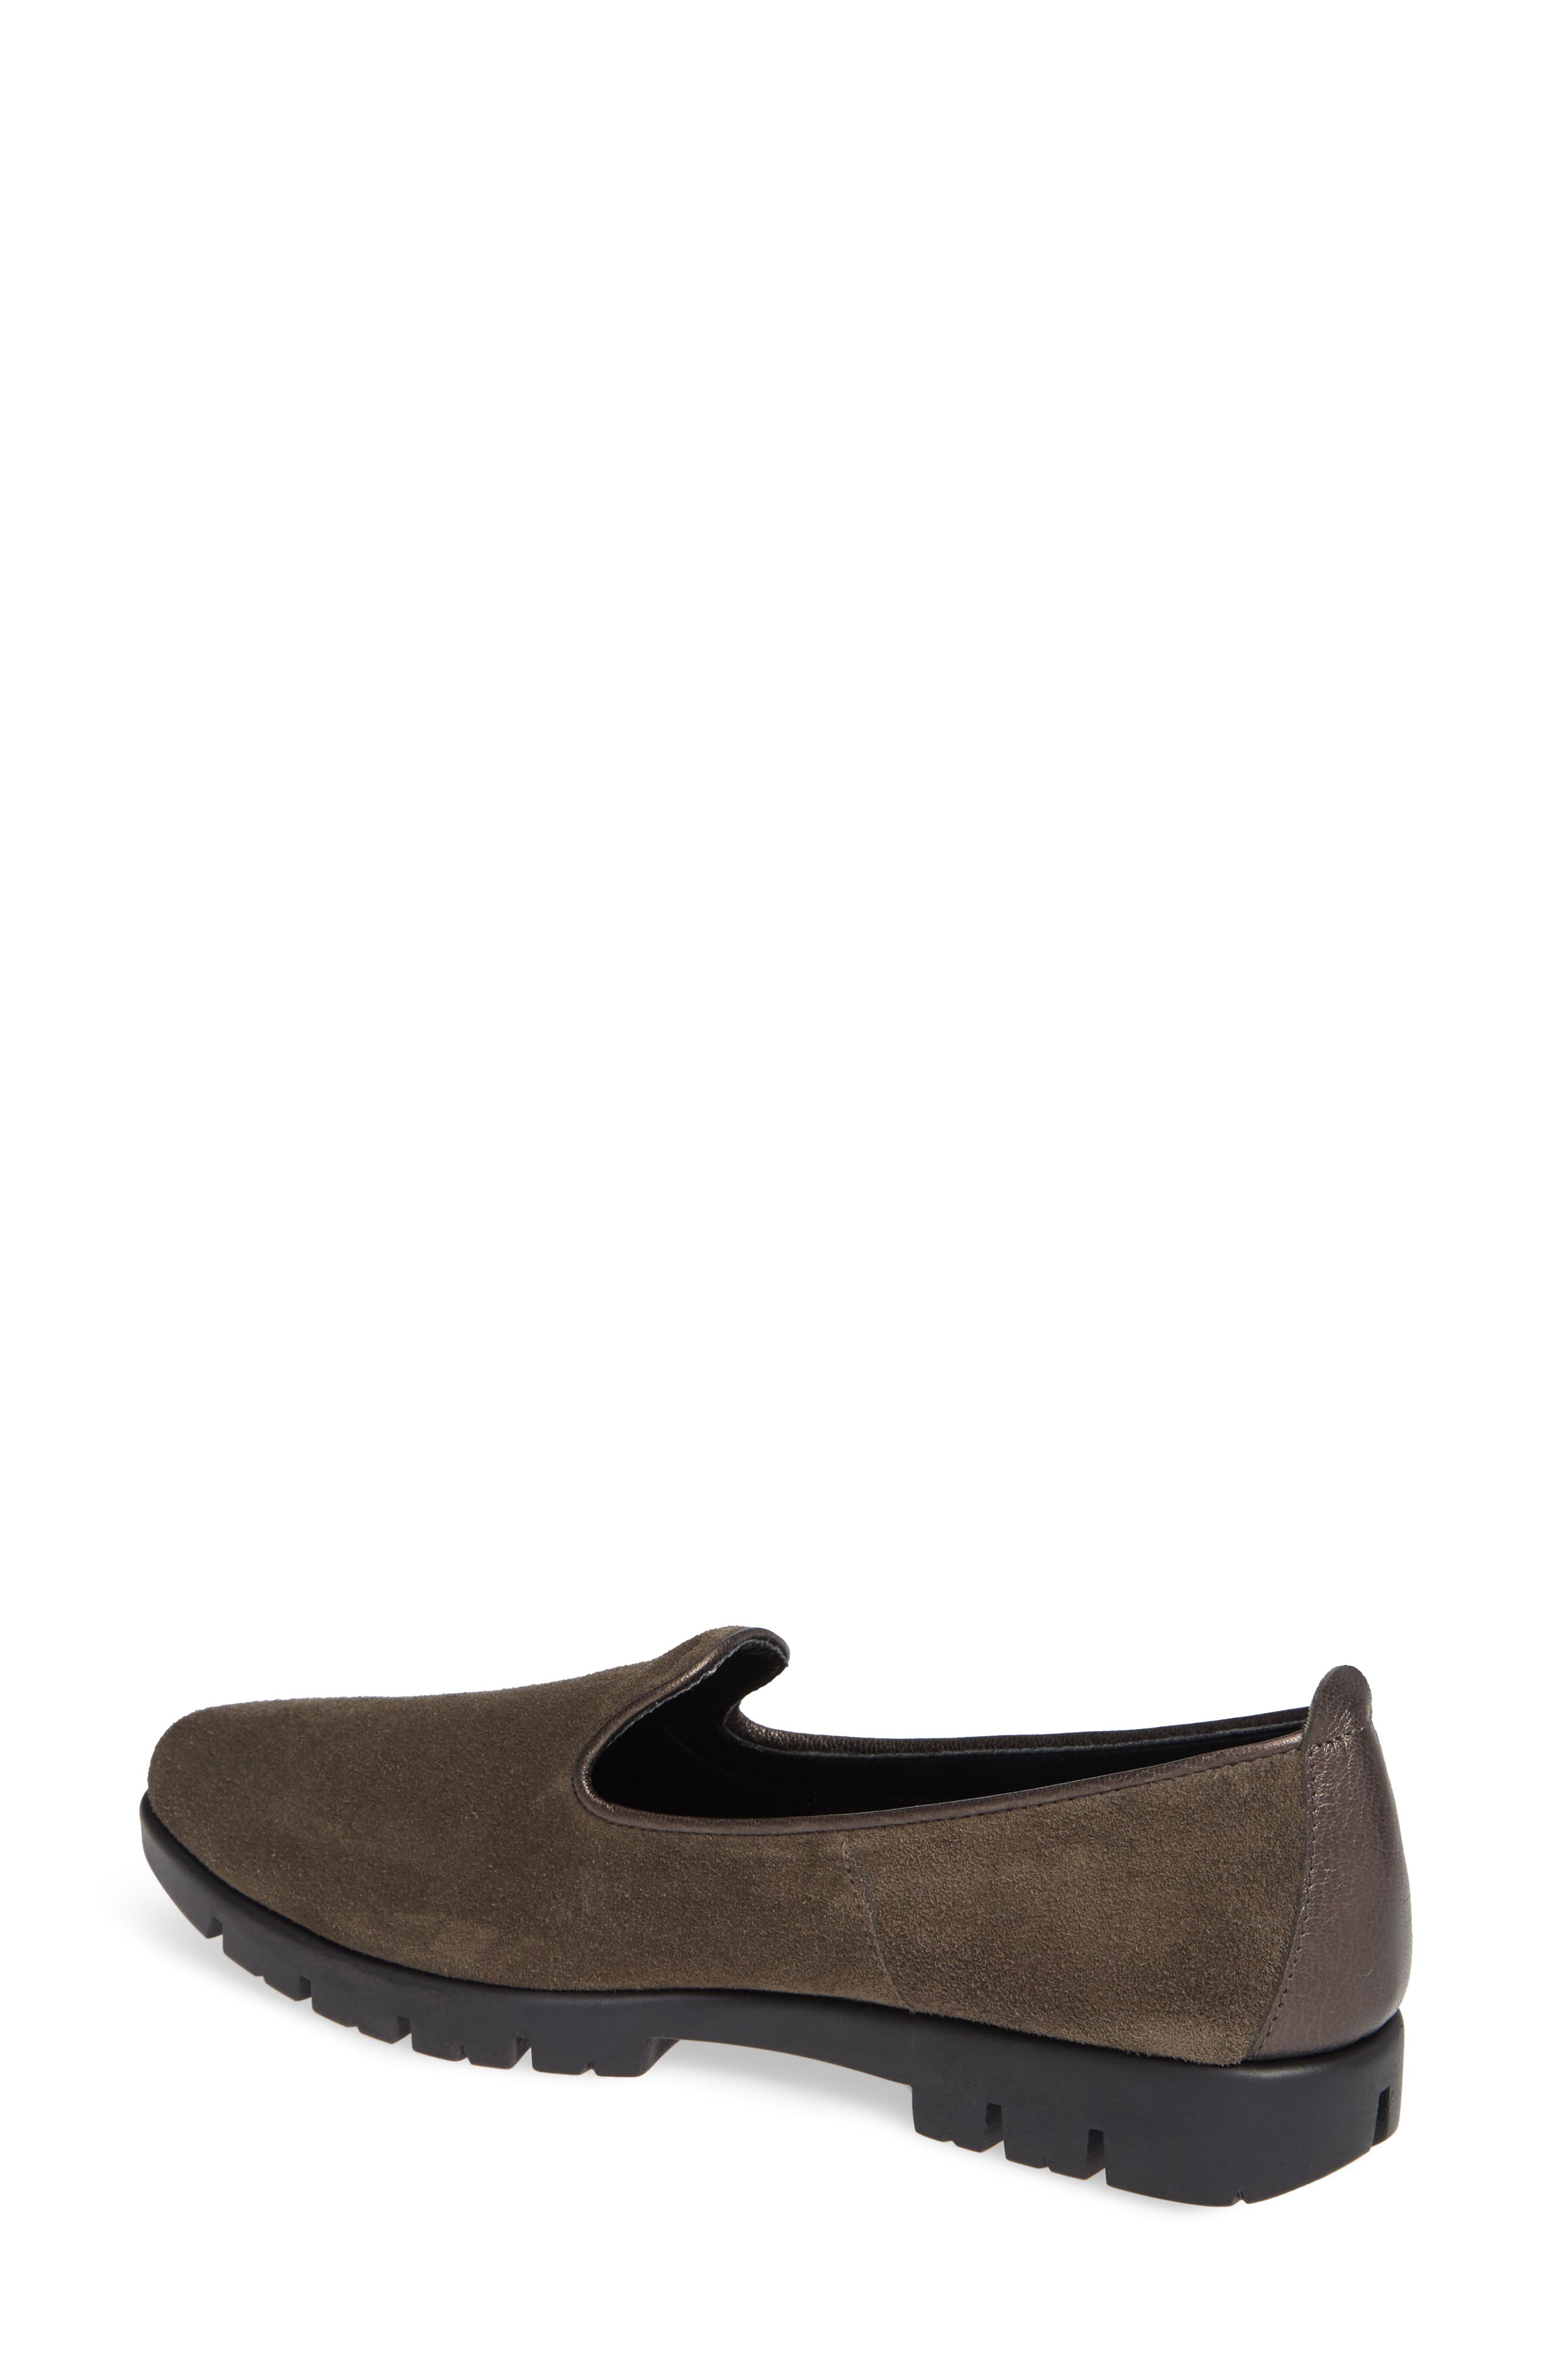 Smokin' Hot Plush Loafer,                             Alternate thumbnail 2, color,                             BROWN SUEDE